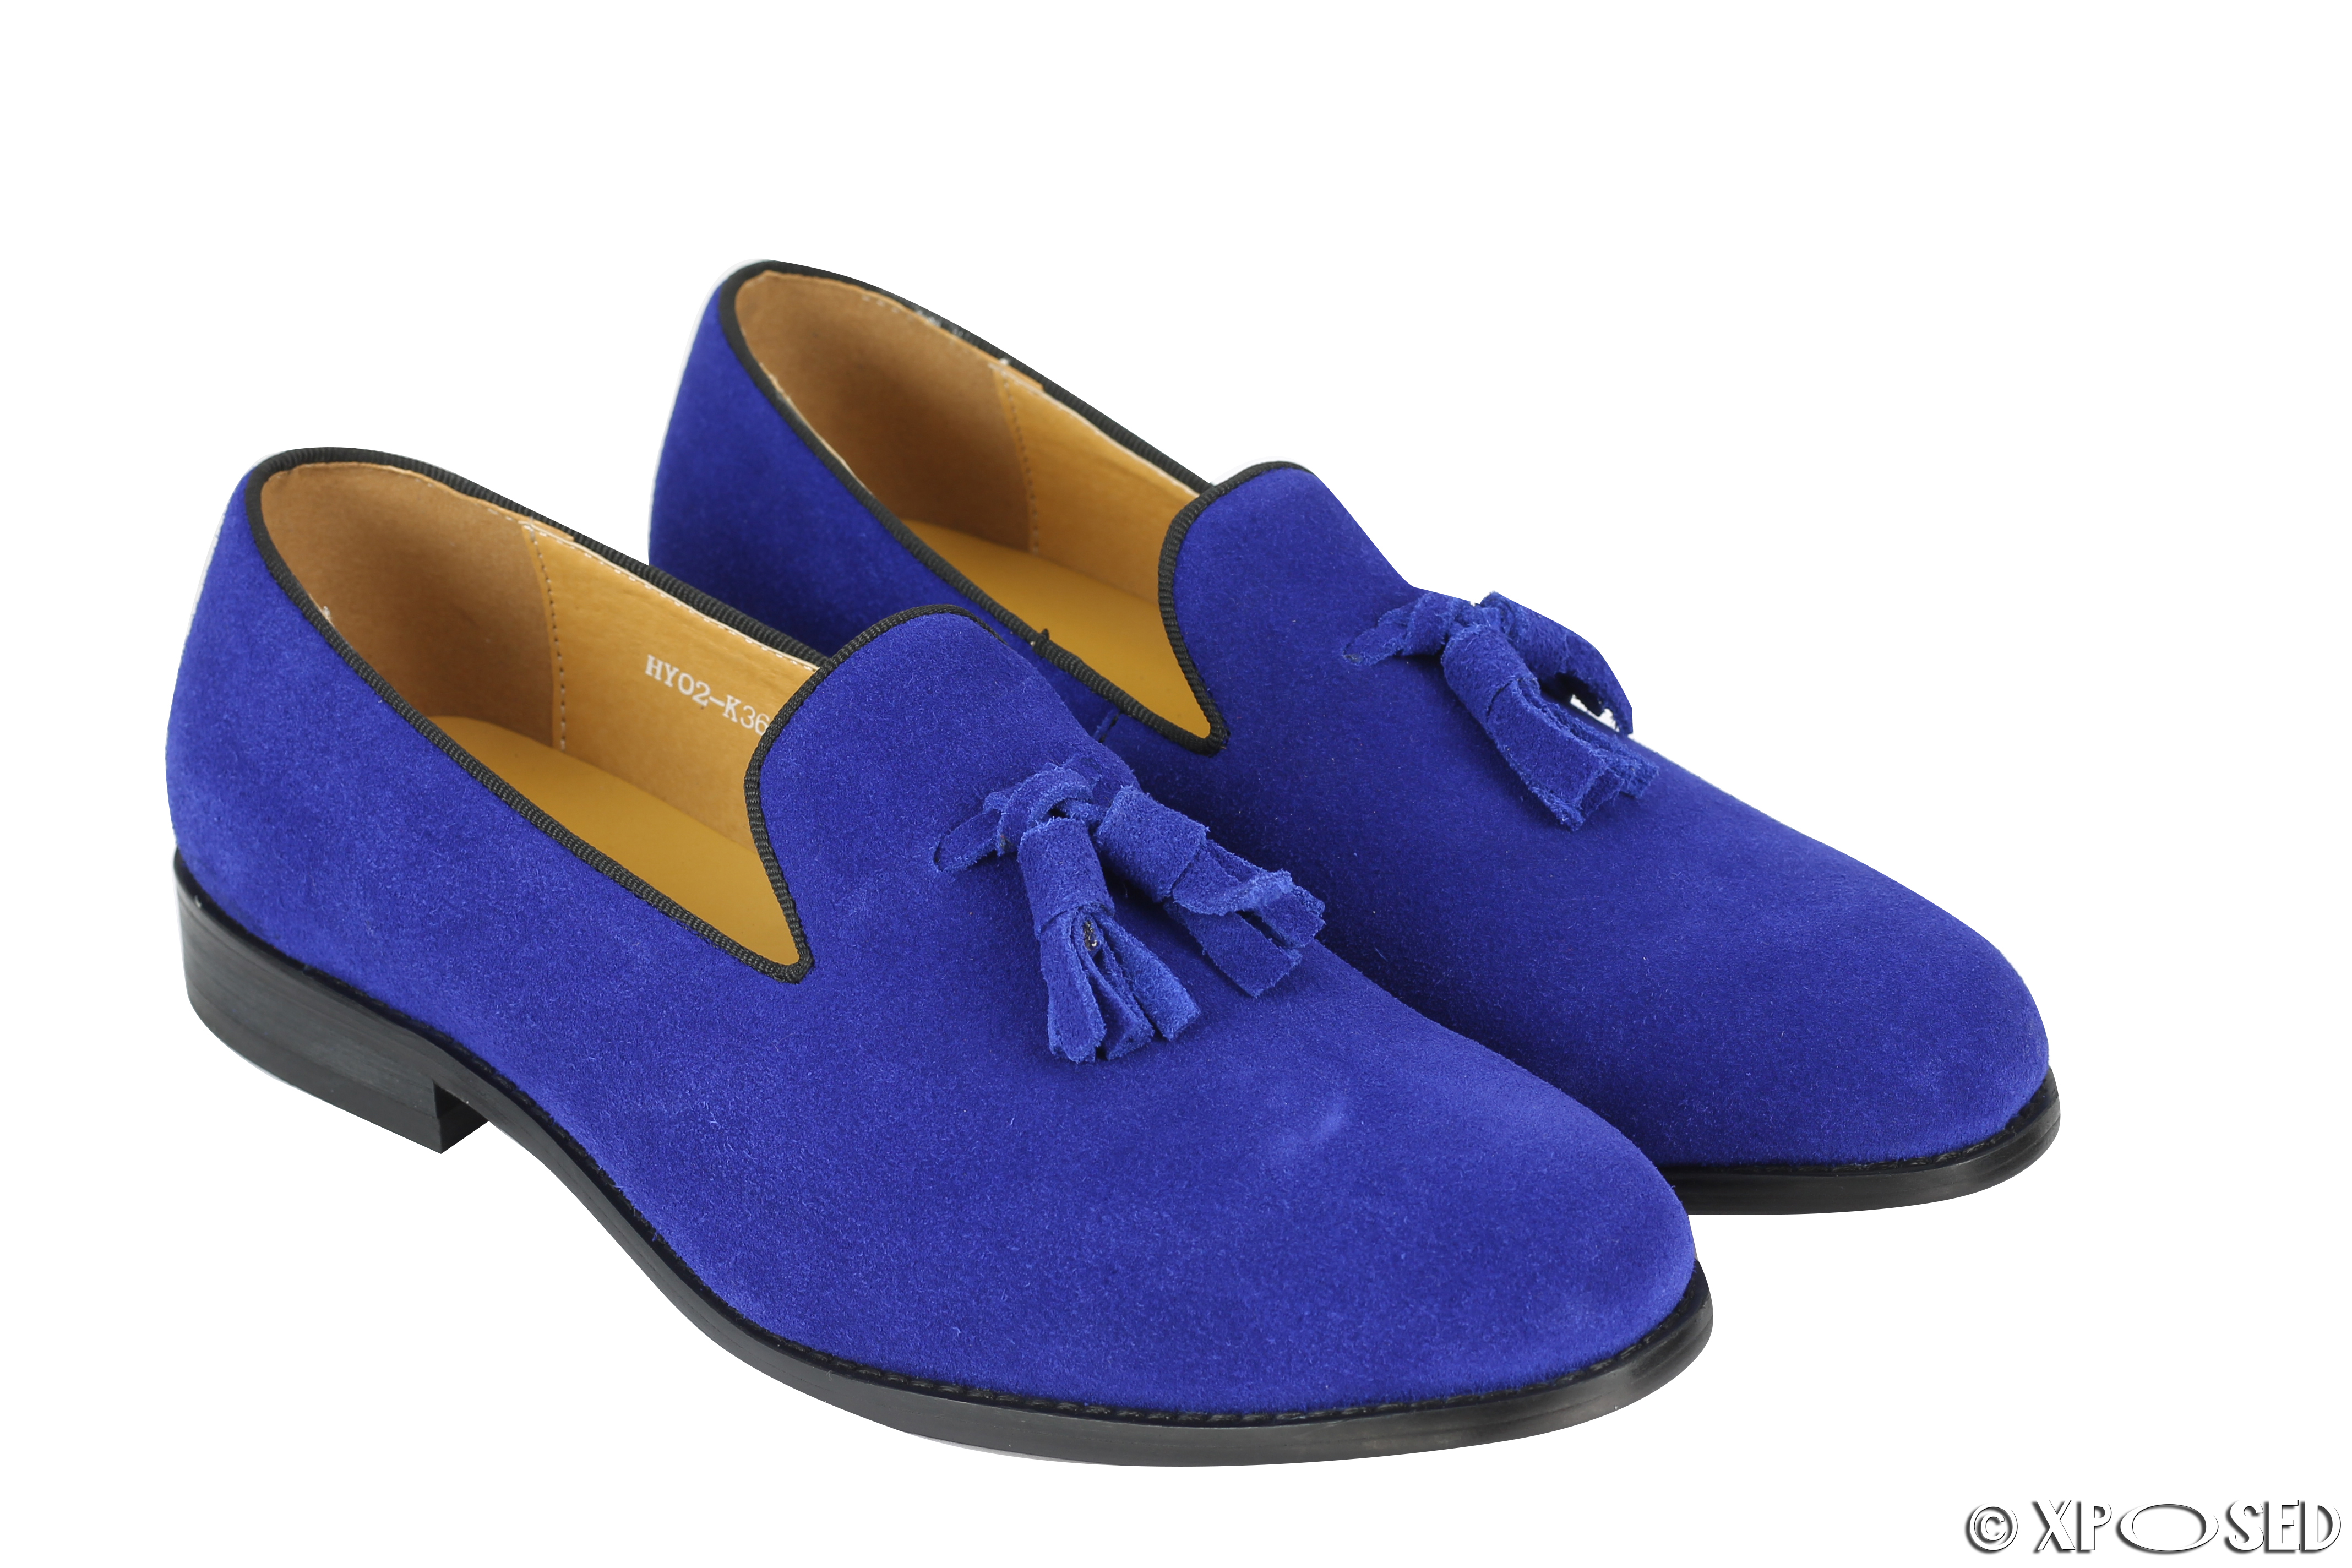 Blue Loafers Sale: Save Up to 50% Off! Shop 24software.ml's huge selection of Blue Loafers - Over styles available. FREE Shipping & Exchanges, and a % price guarantee!